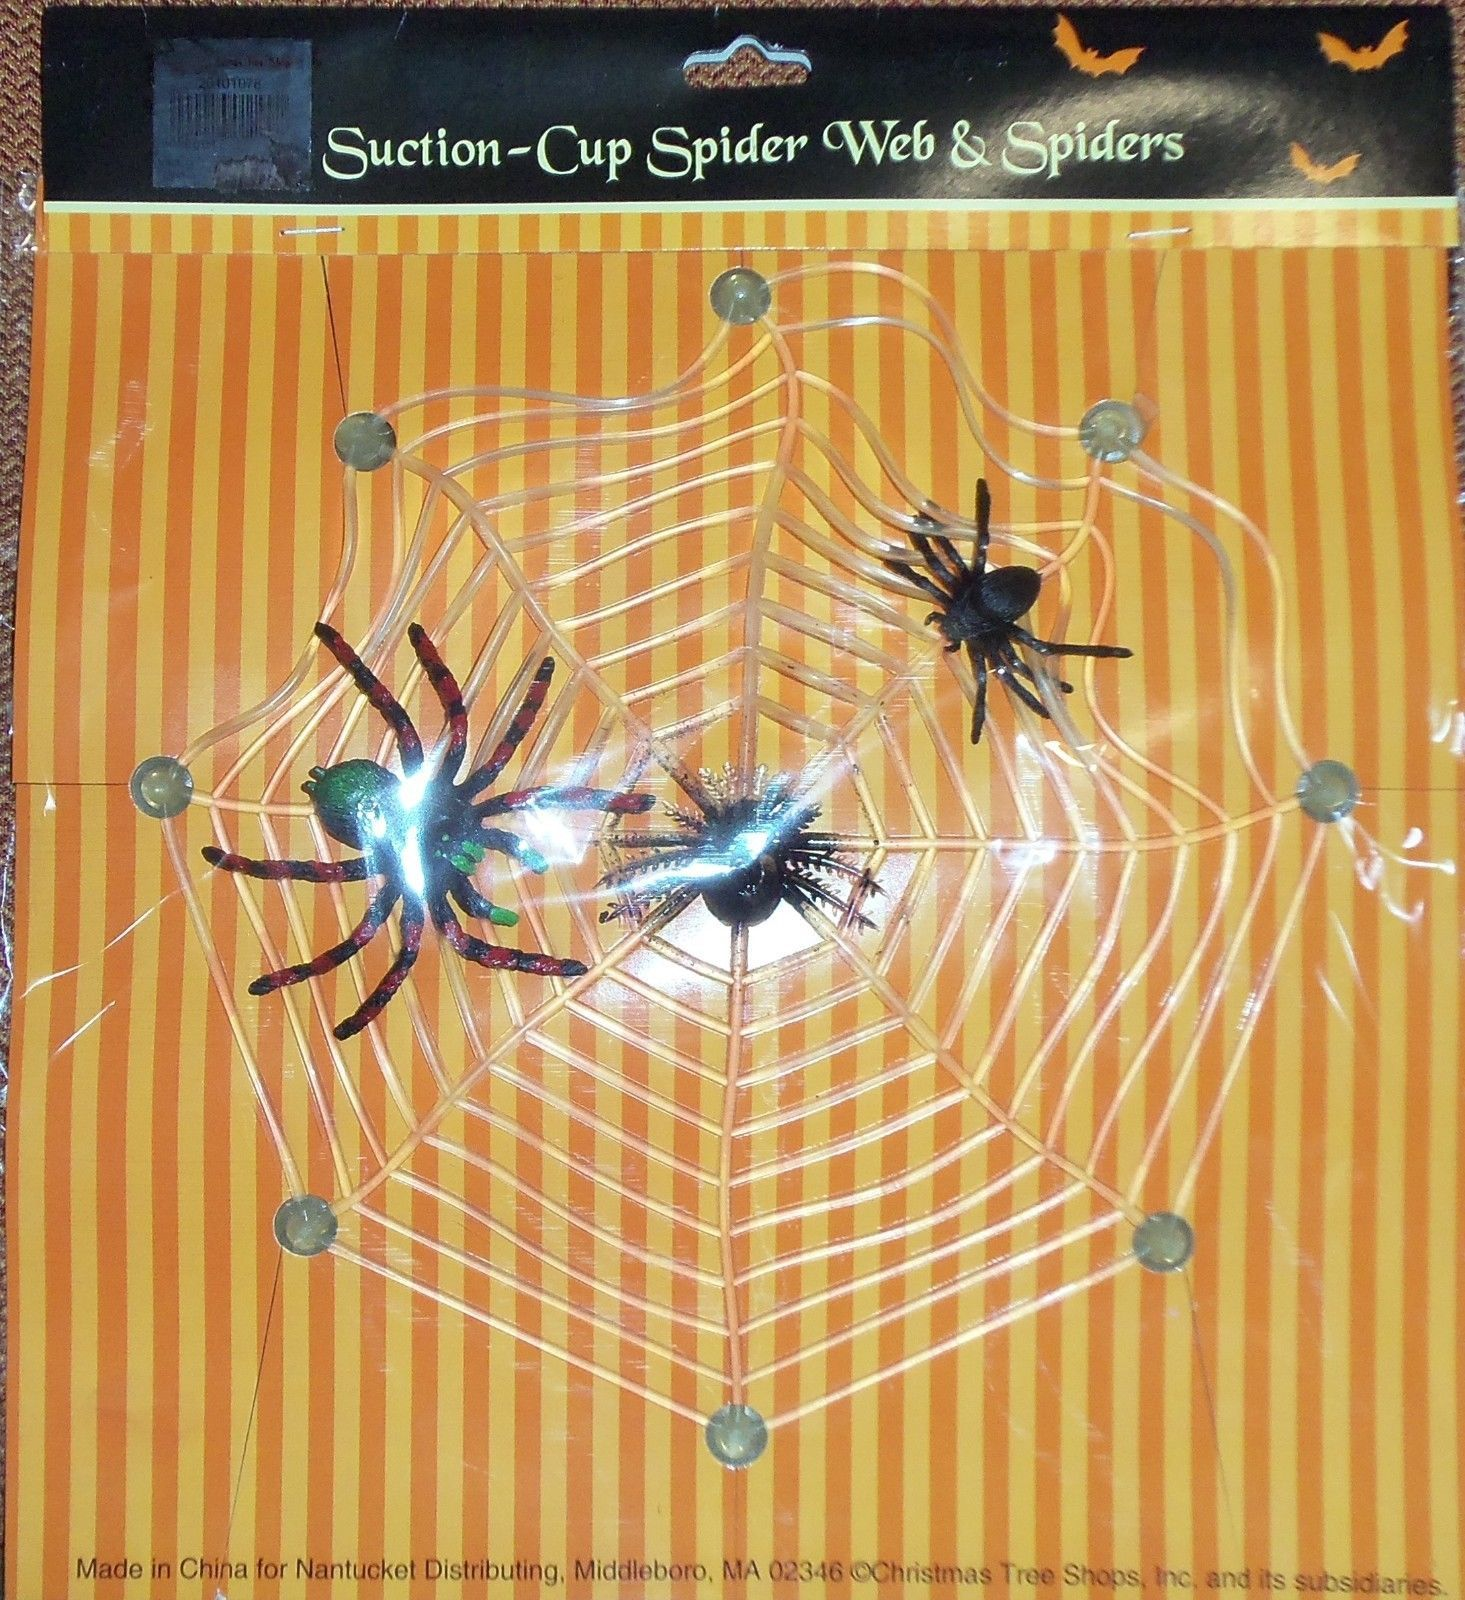 650 - Halloween Suction Cup Spider Web & Spiders Decoration #Halloween